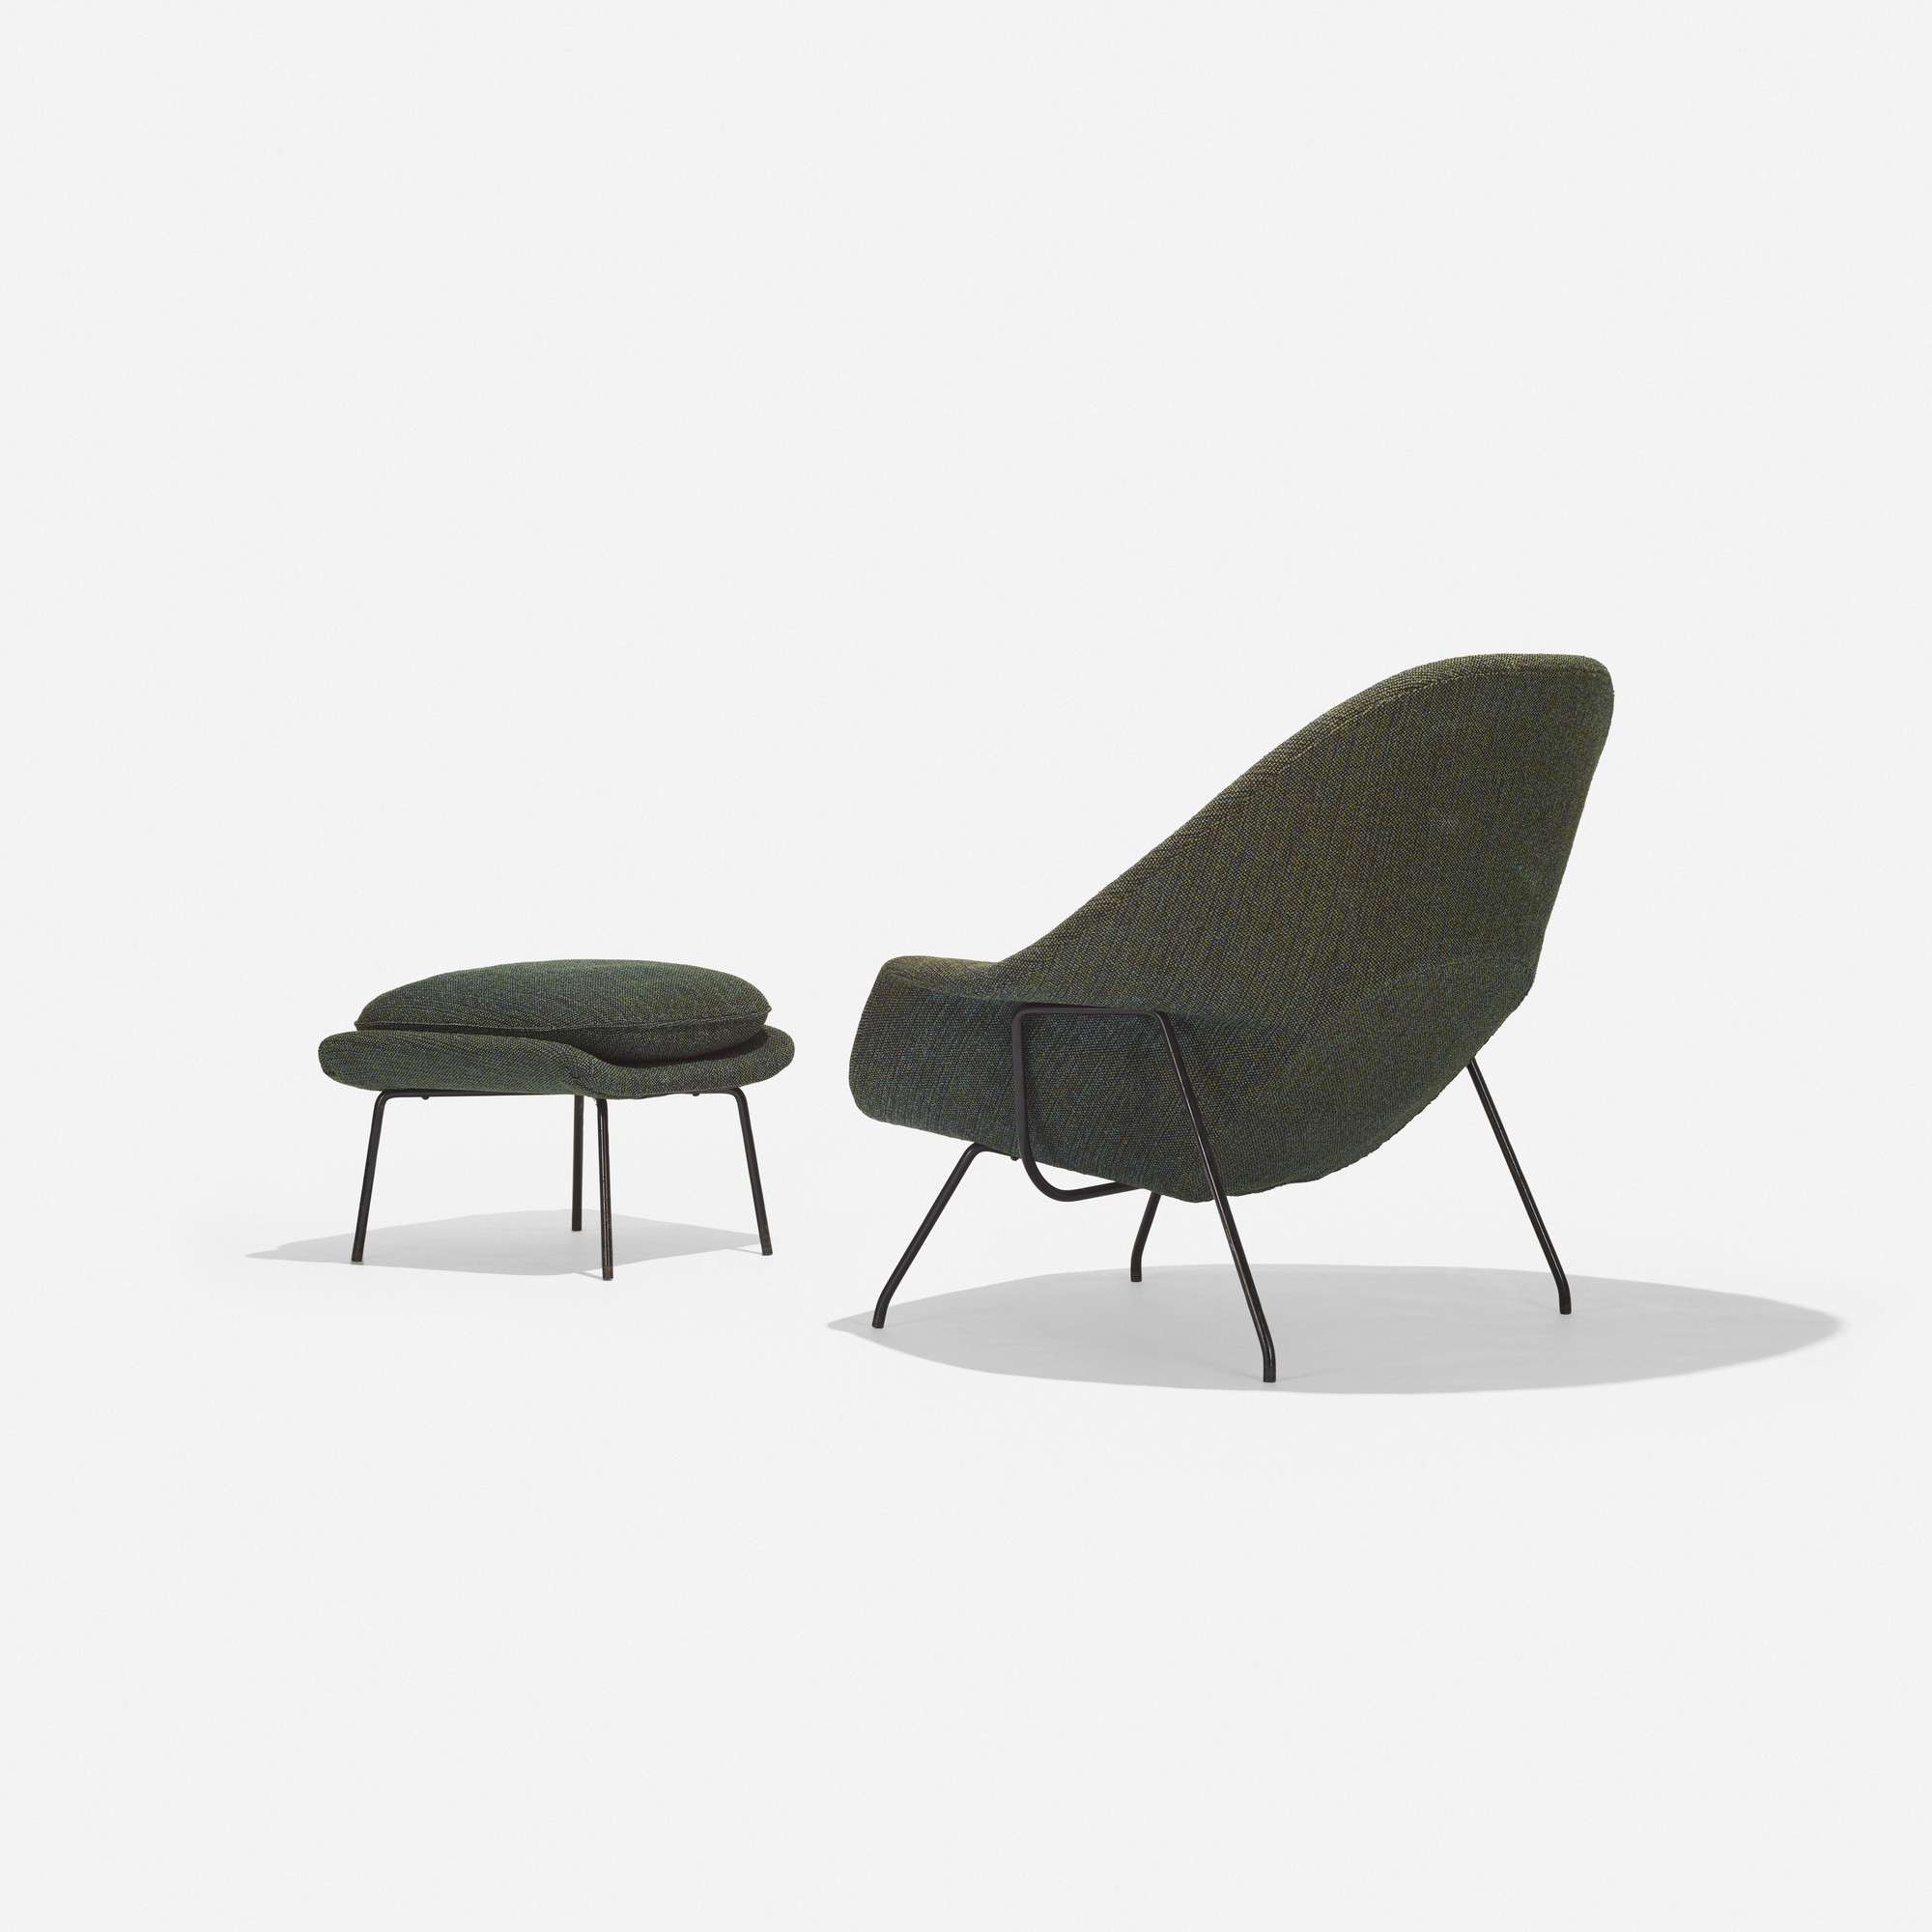 229: Eero Saarinen / Womb chair and ottoman (3 of 3)